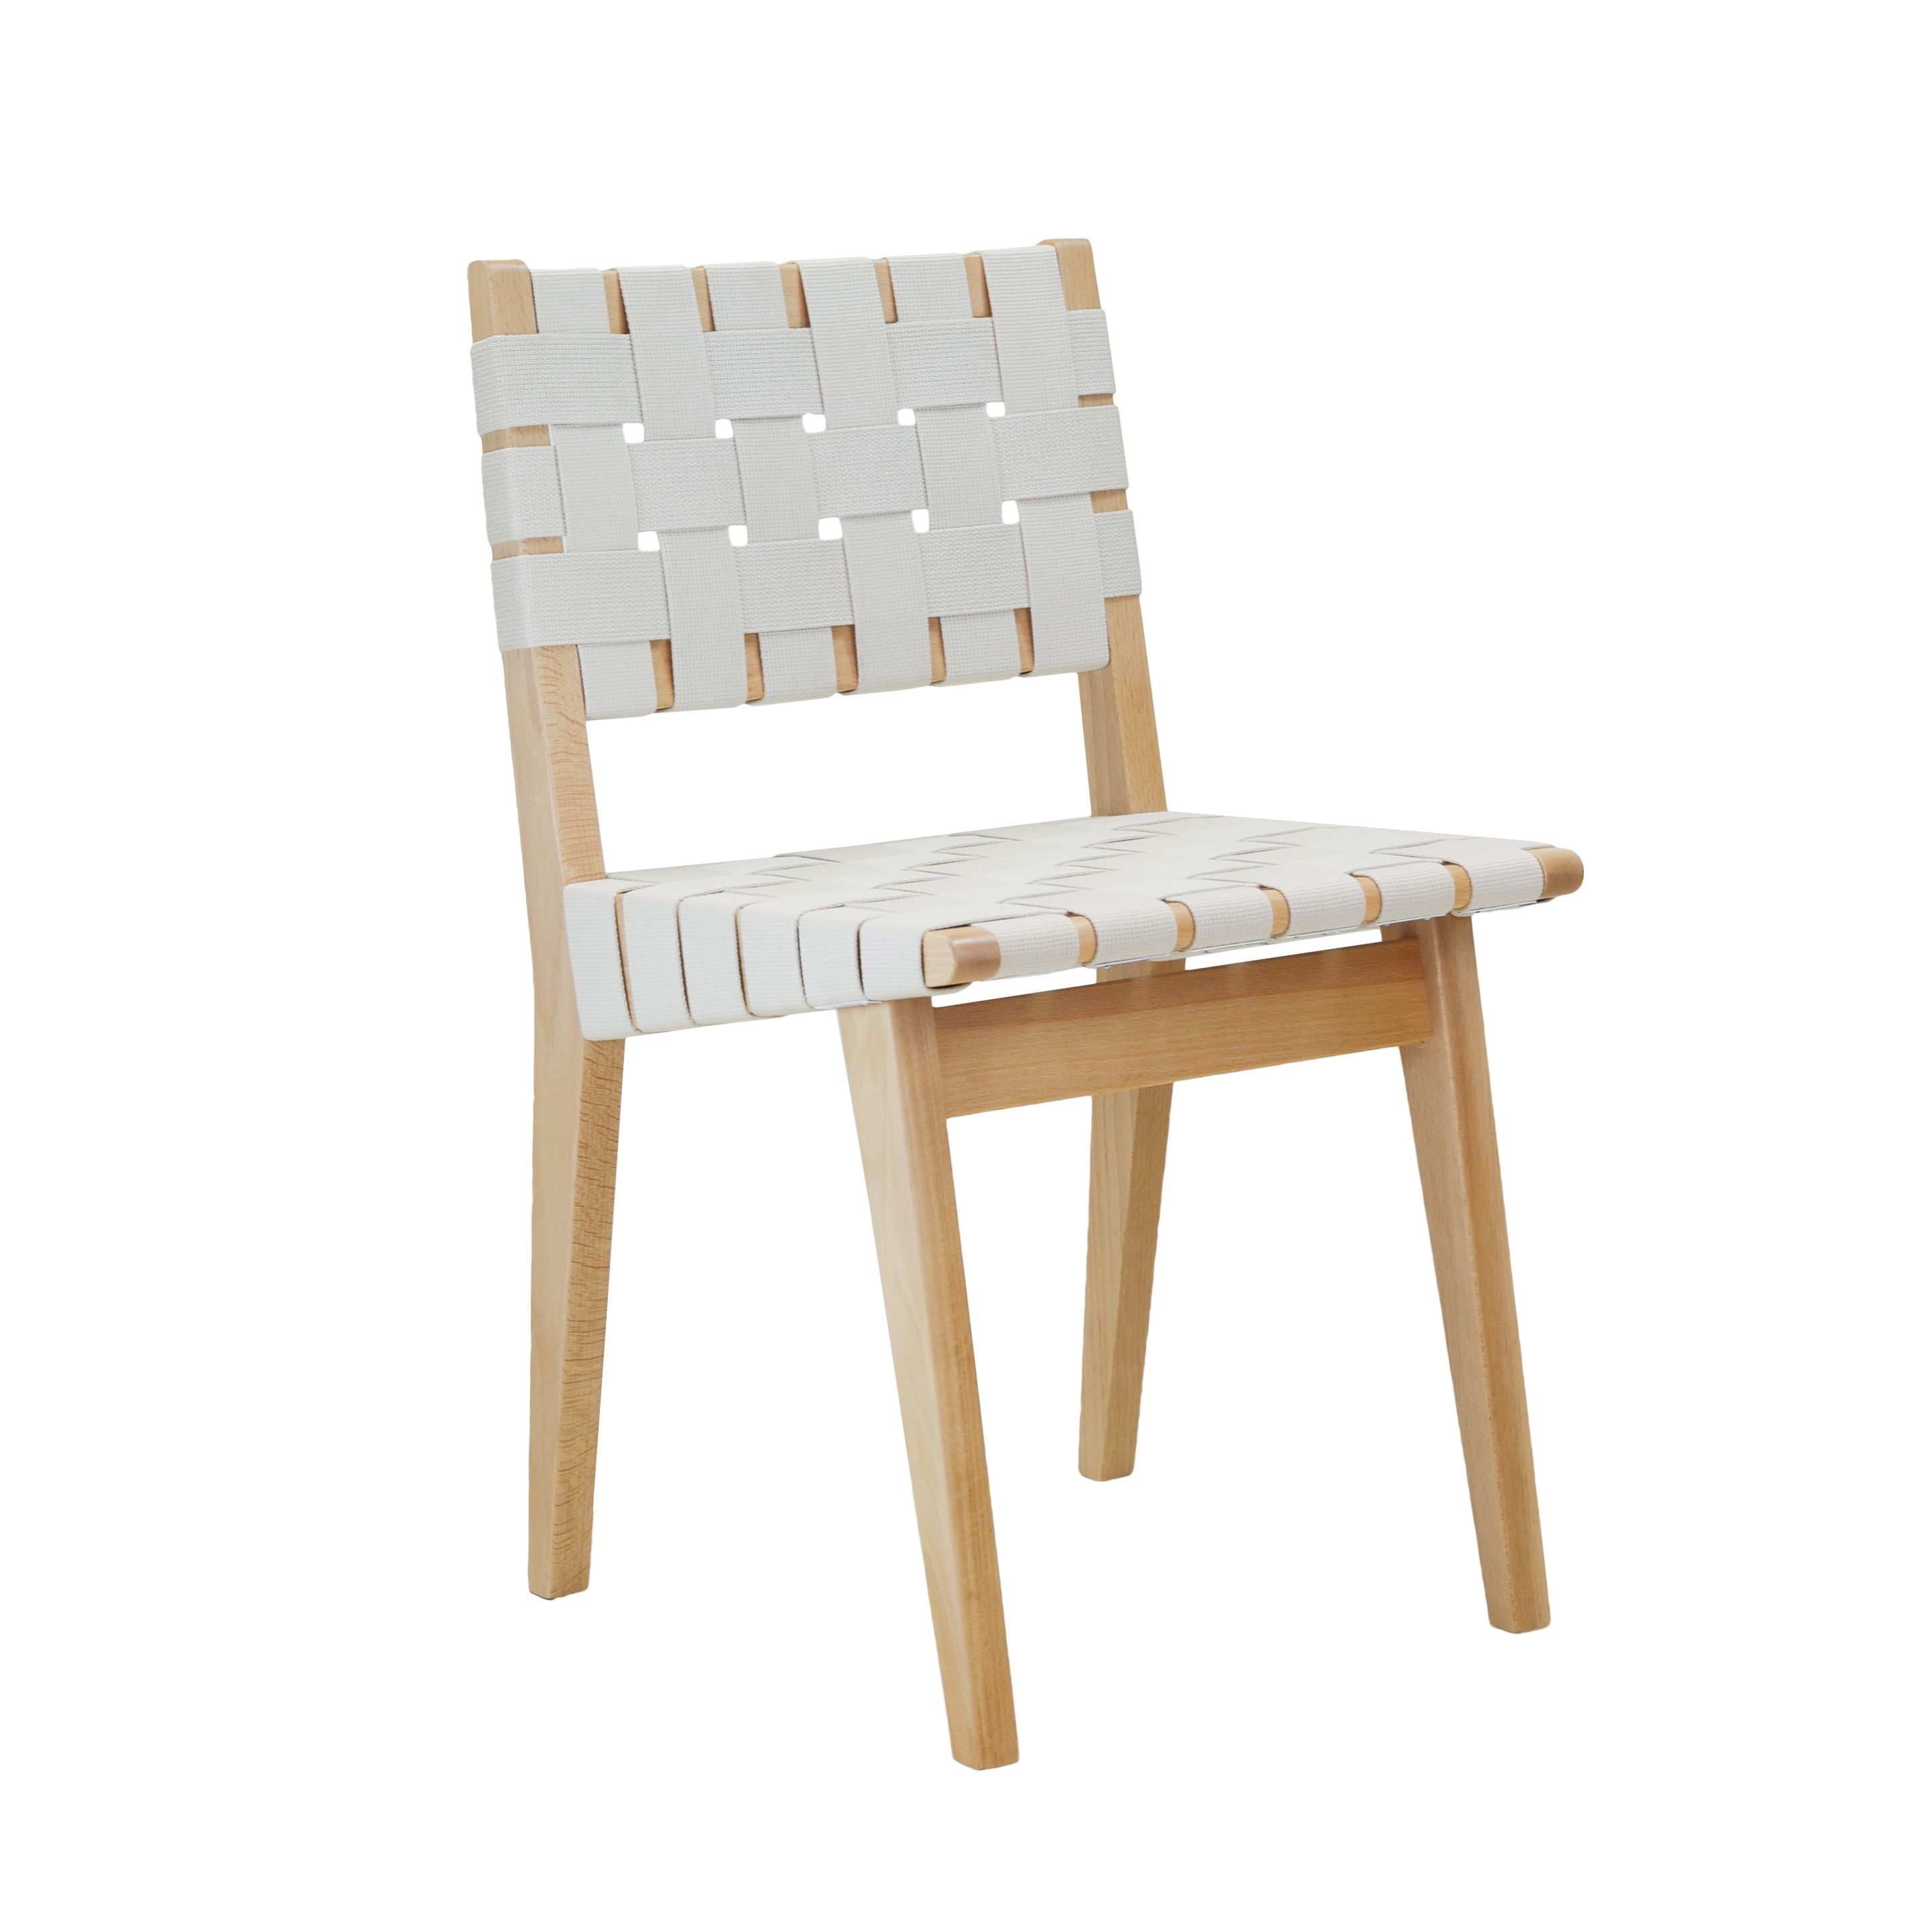 The Cotton Weave Dining Chair in White is compact and practical as ...